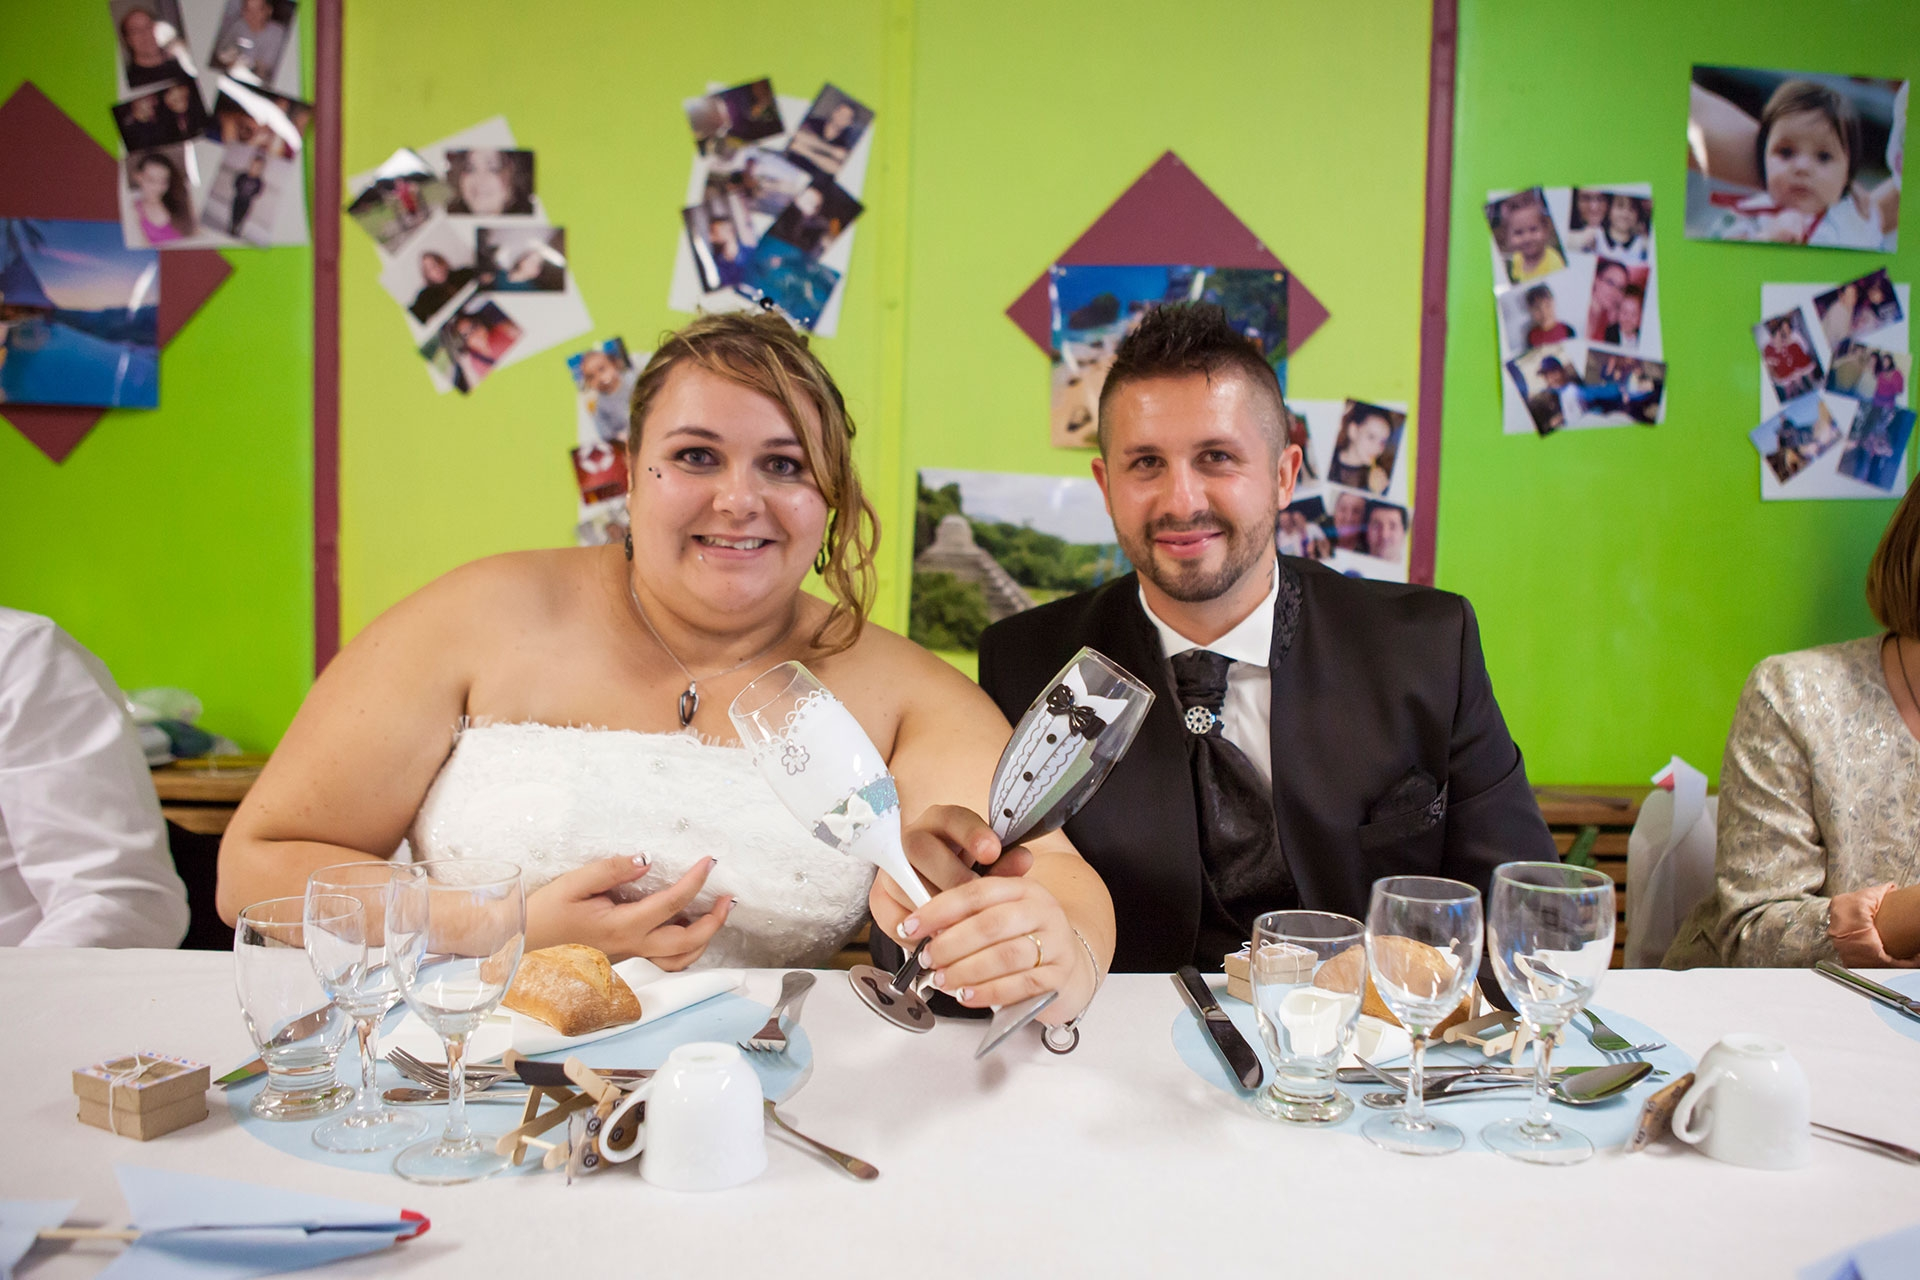 particuliers-evenements-mariages-oui-elodie&wilson-58